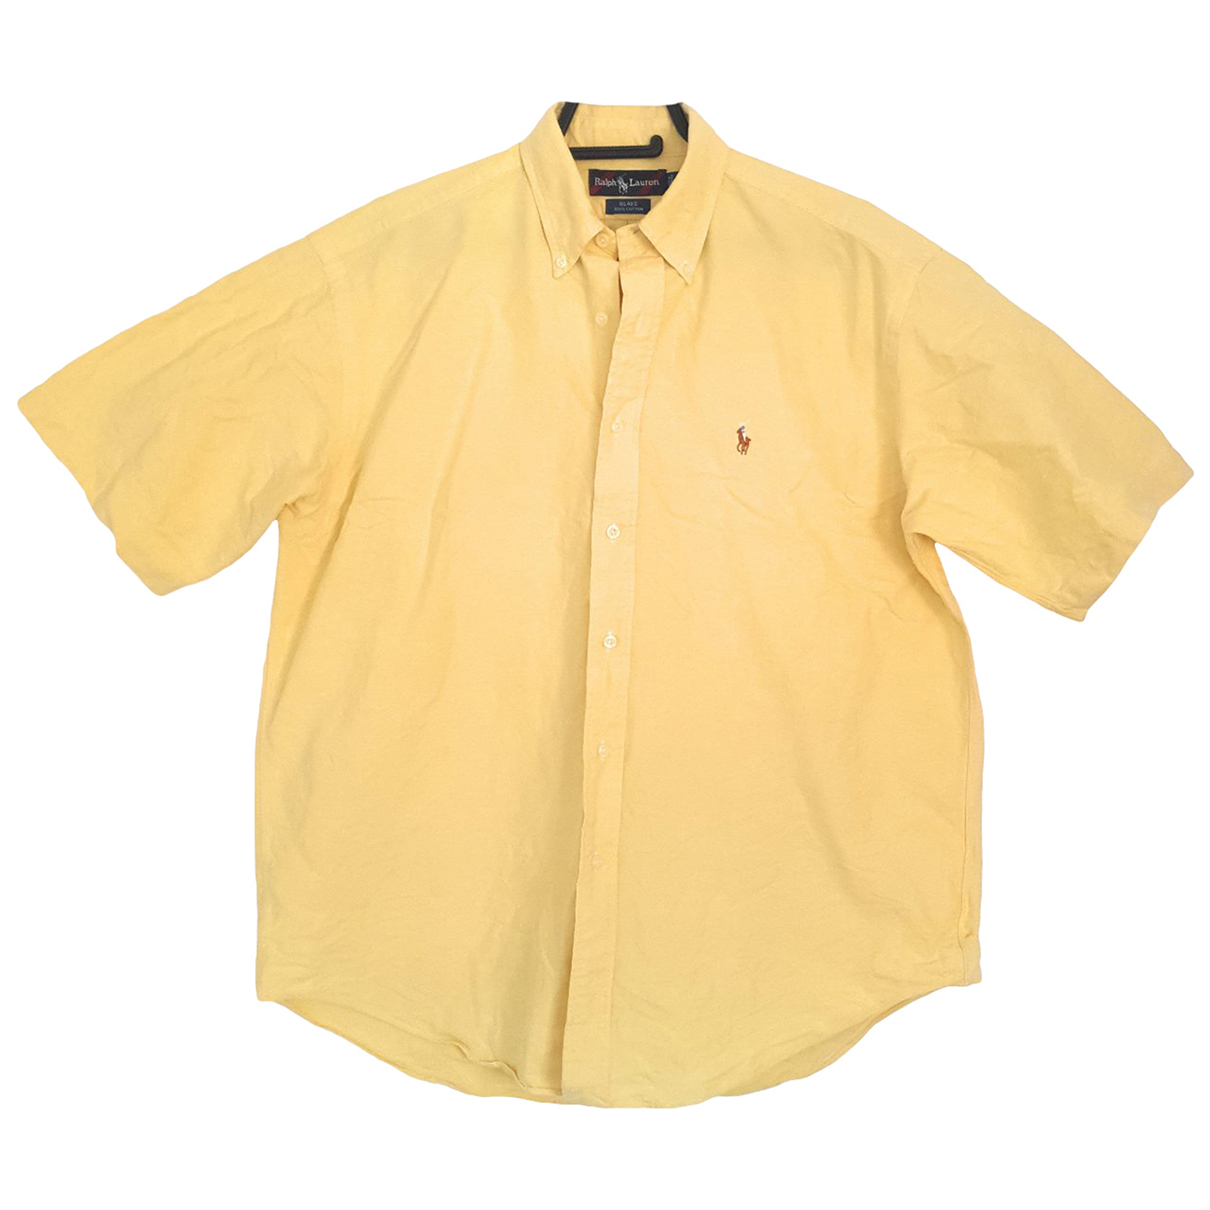 Ralph Lauren \N Yellow Cotton Shirts for Men M International